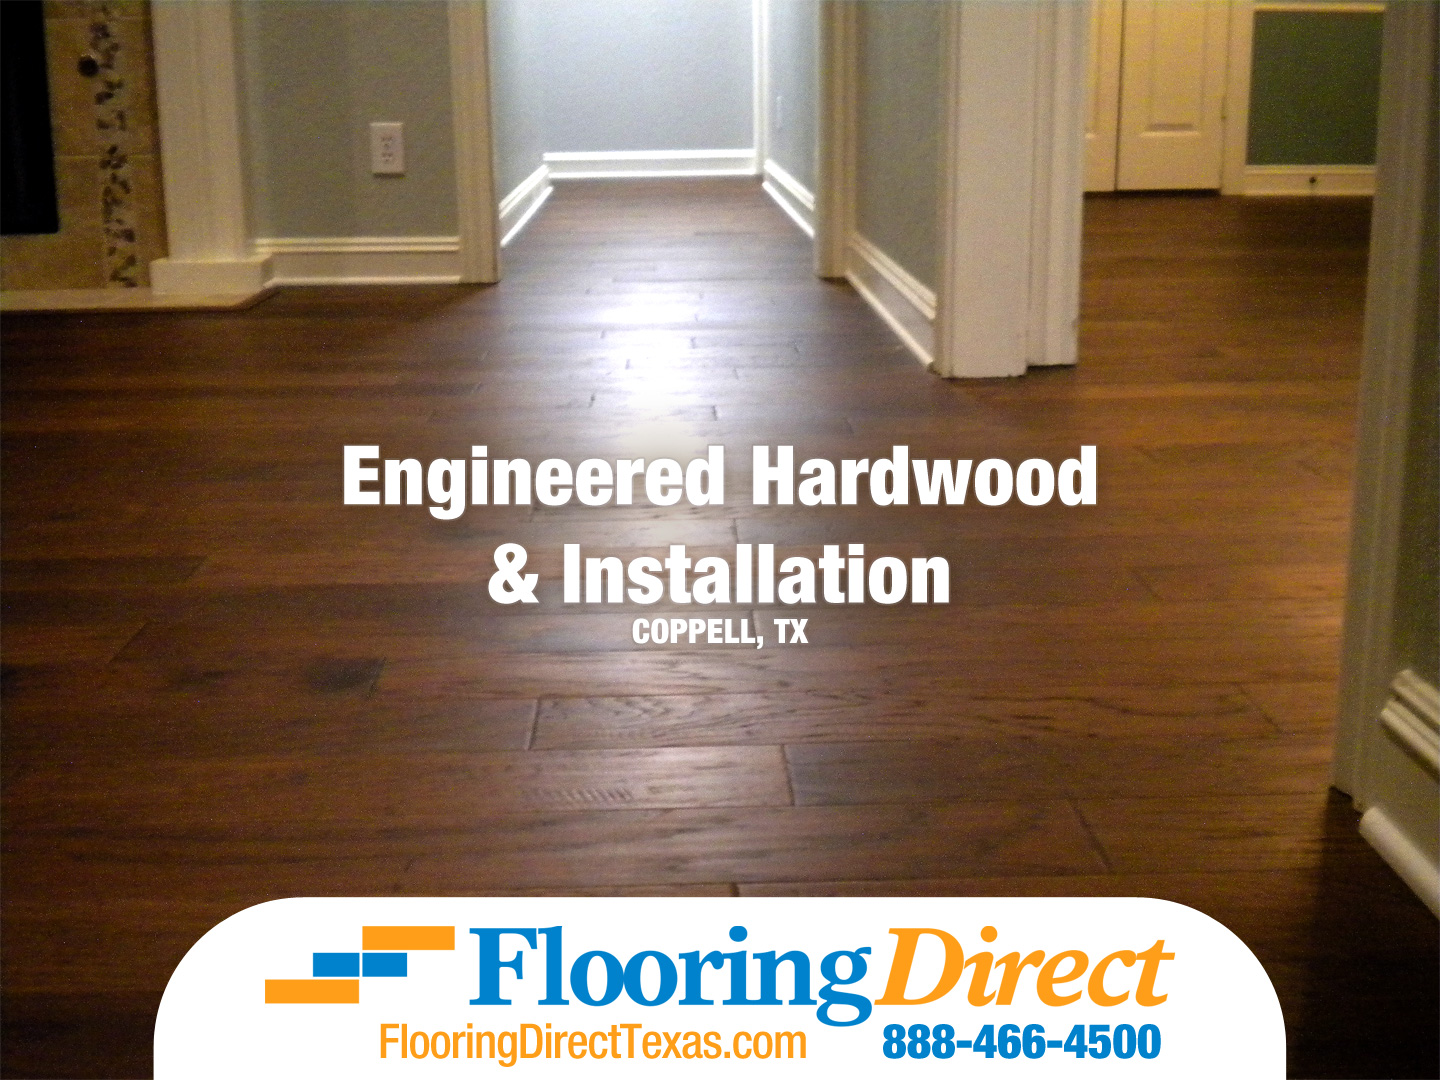 Engineered Hardwood And Installation Coppell TX Flooring Direct 888-466-4500 WS3